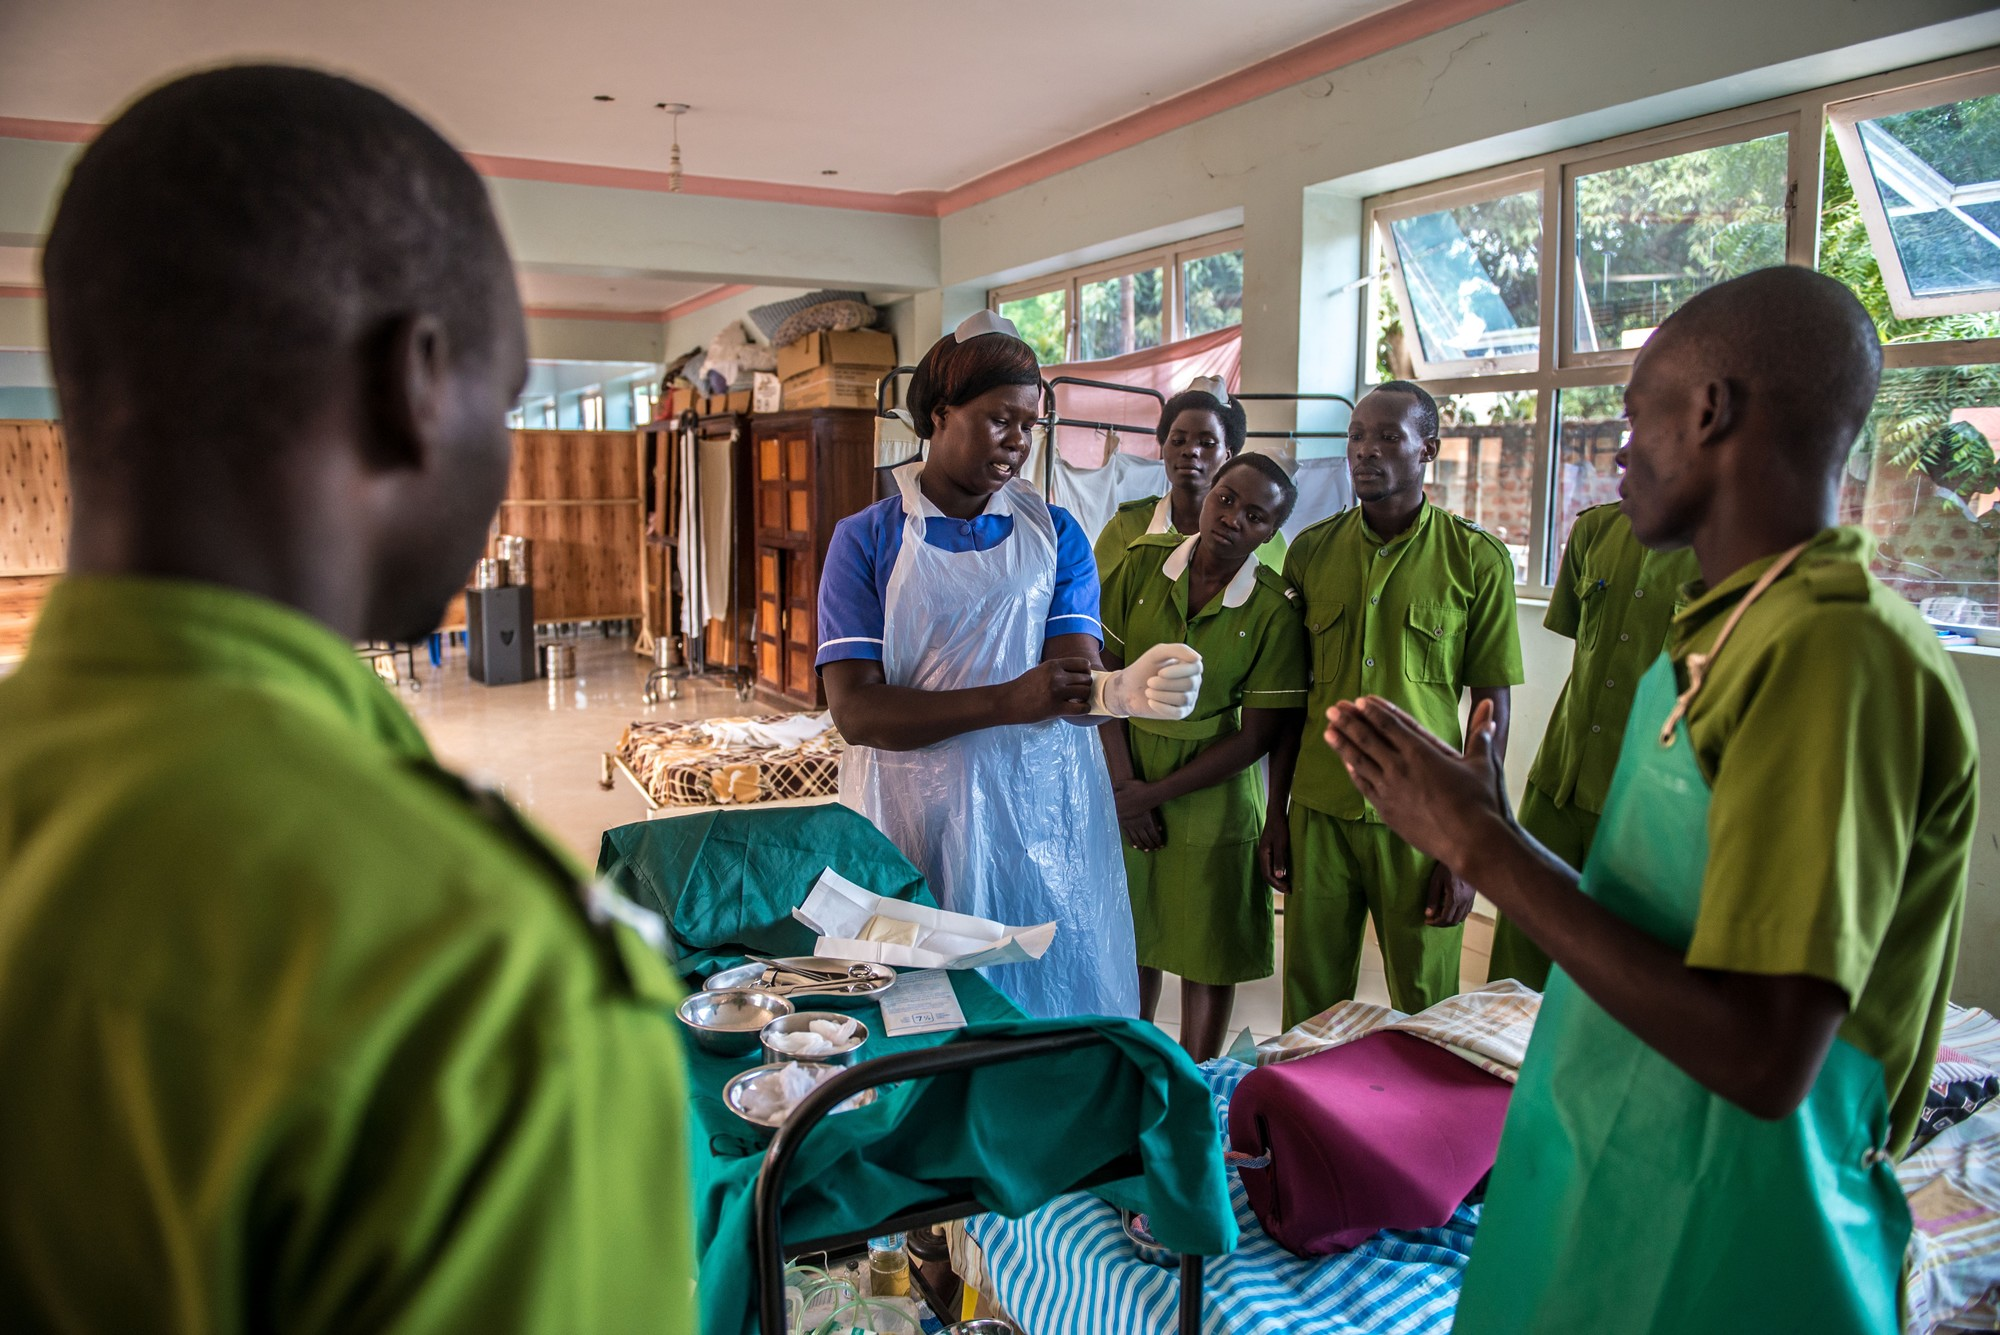 Beatrice Aciro, midwife and graduate of Good Samaritan School of Nursing & Midwifery, conducts a practical exercise with students. Photo by Tommy Trenchard for IntraHealth International